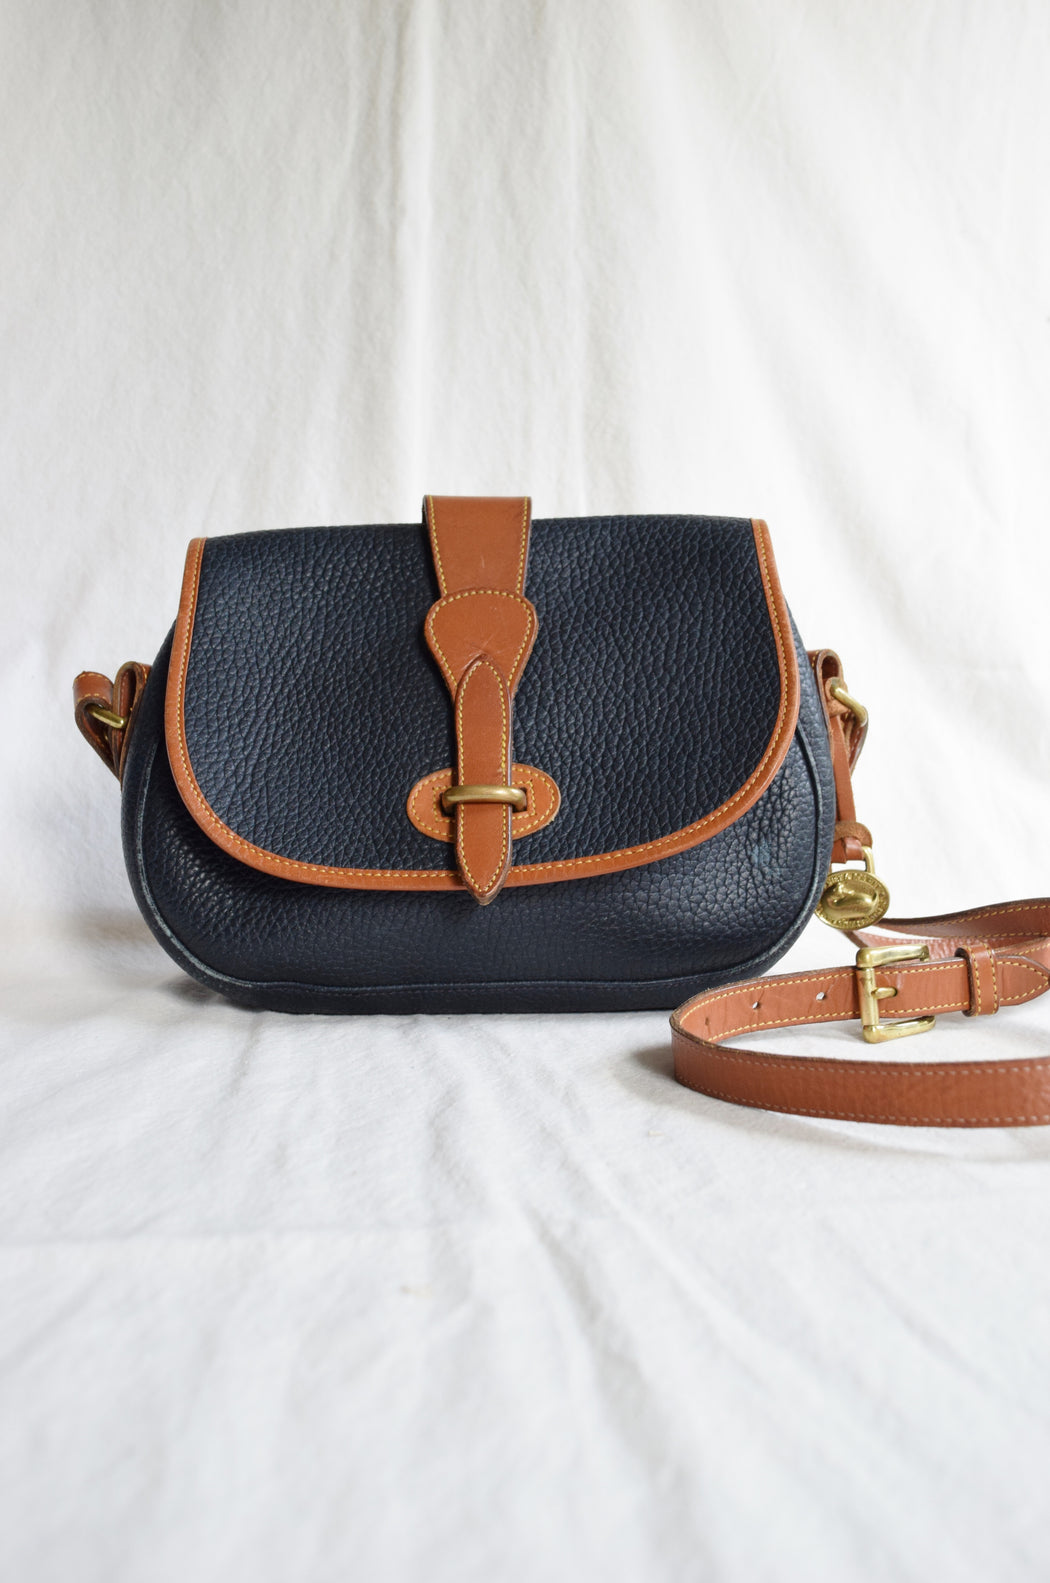 Vintage Dooney & Bourke Crossbody Saddle Bag in Navy and British Tan | All Weather Leather